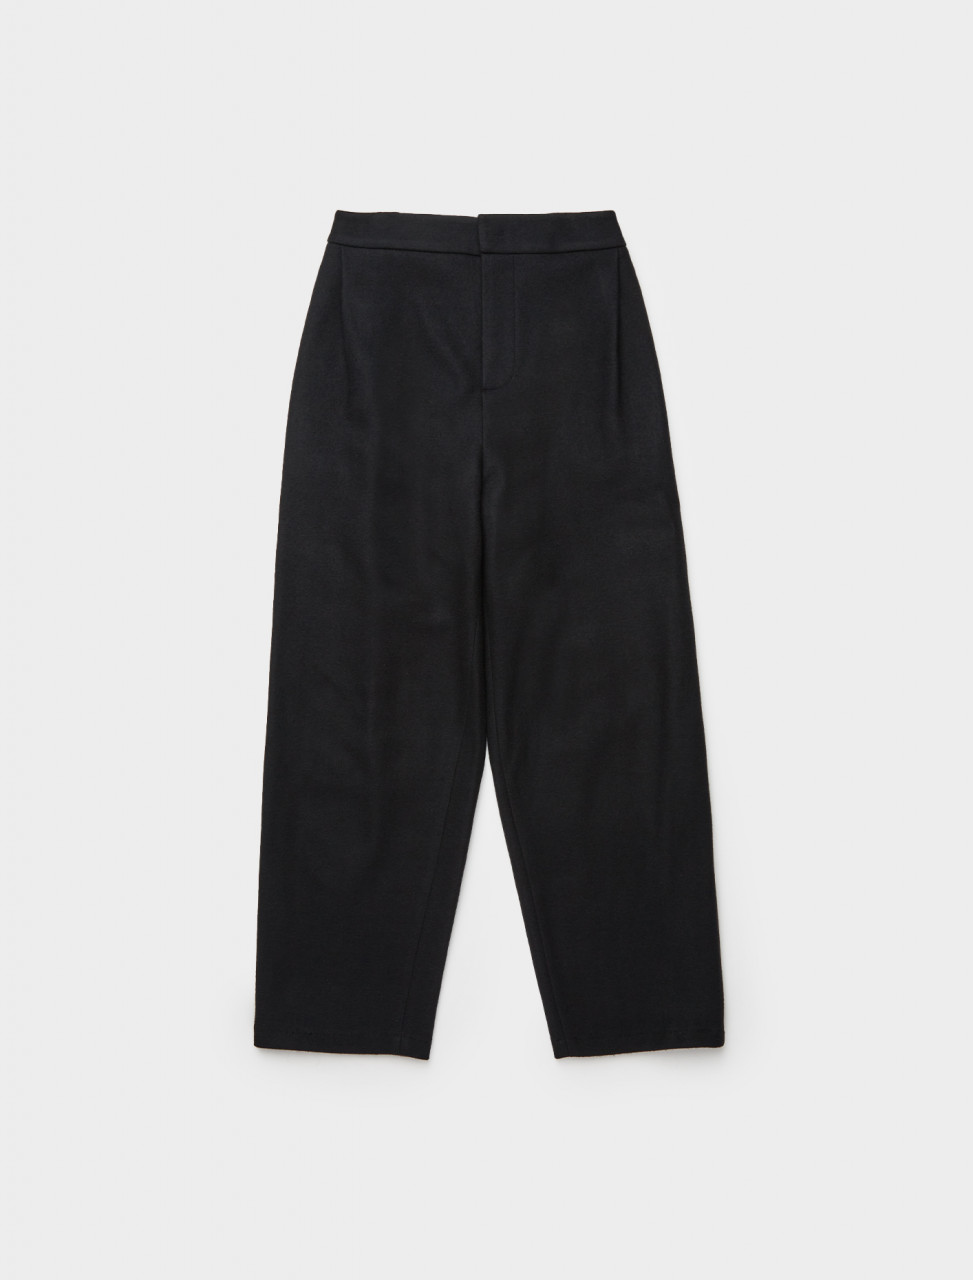 353-AM20FW02PT AMOMENTO GARCONNE WOOL TROUSERS